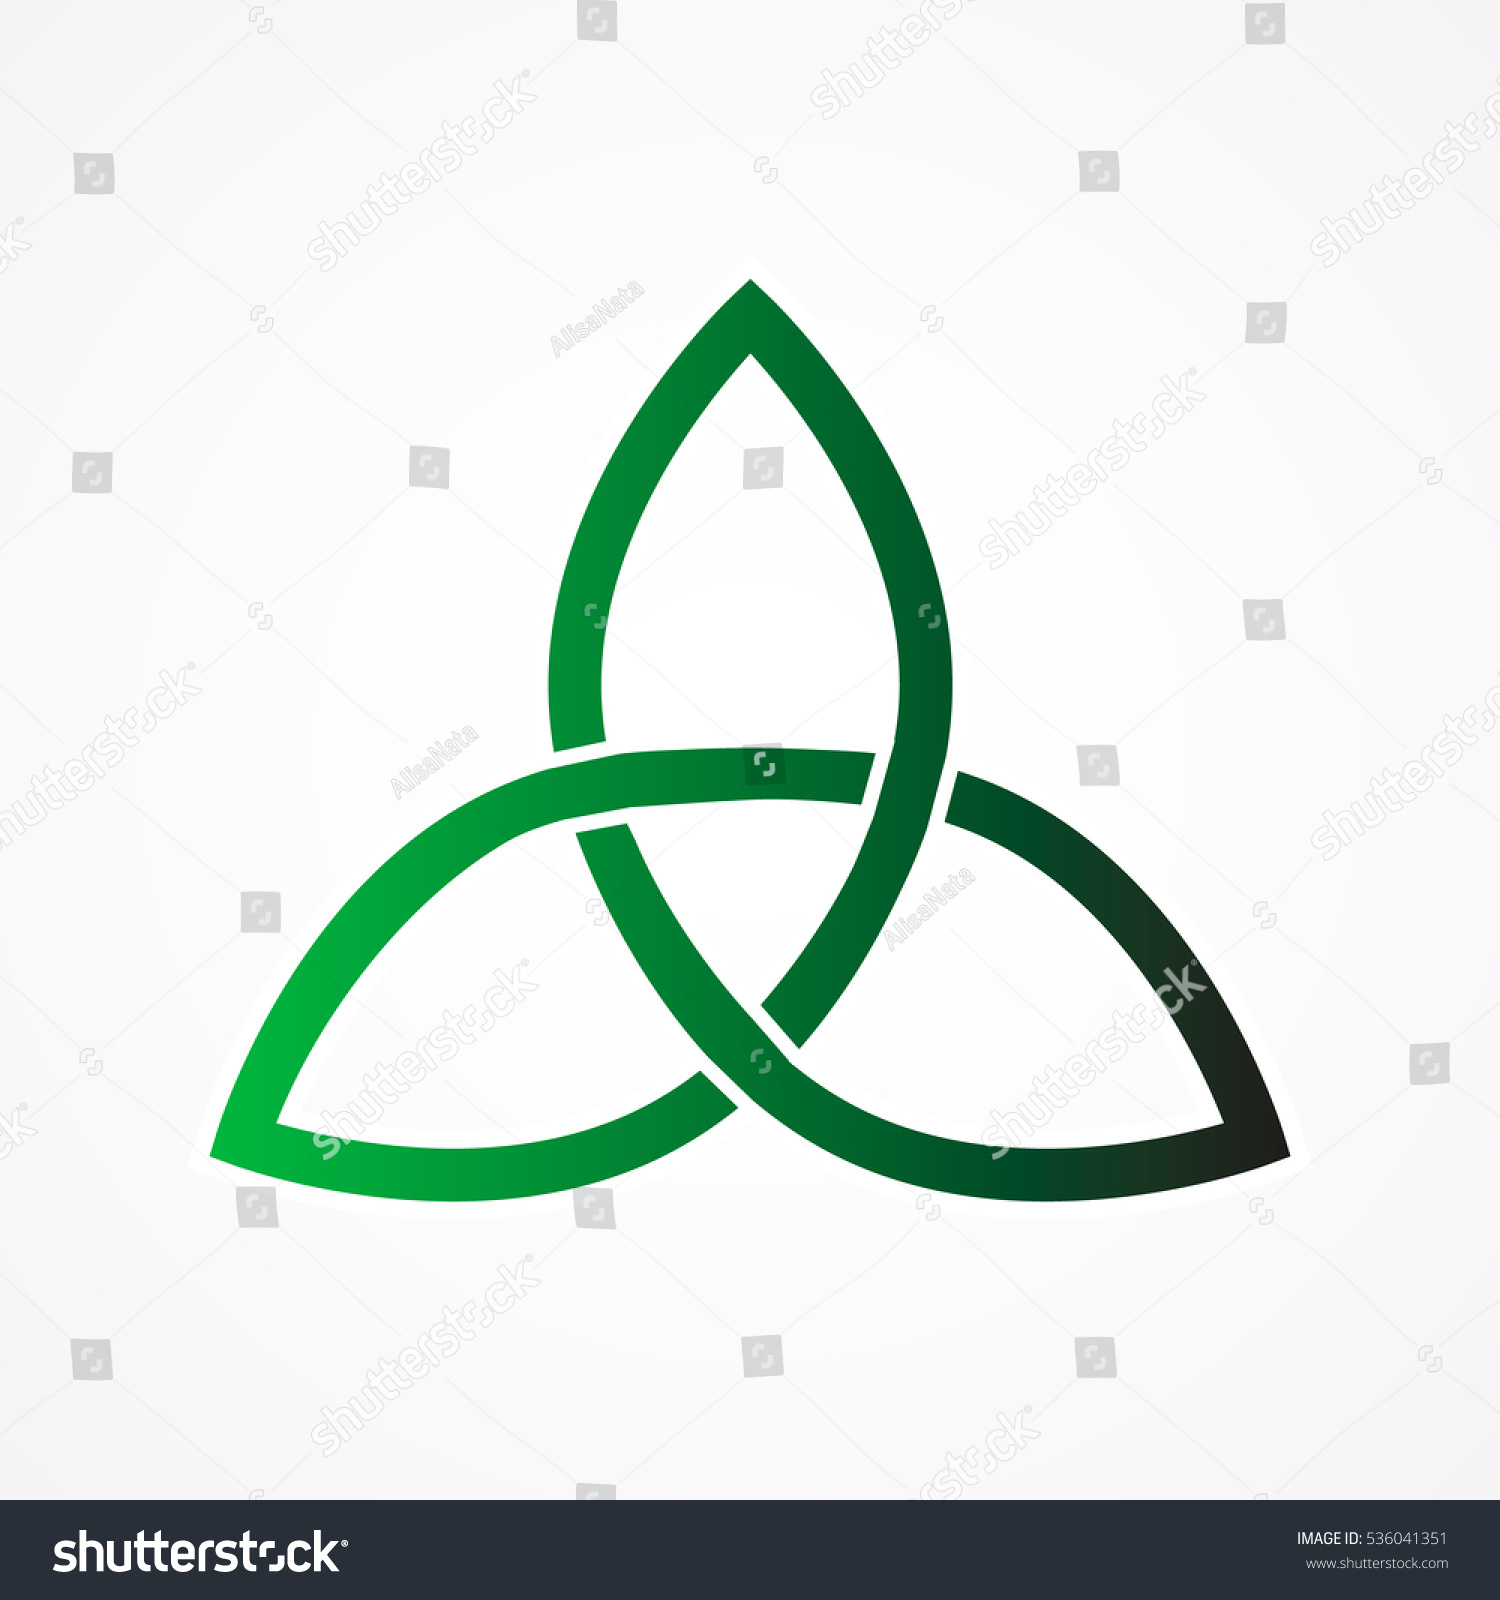 Trinity Knot Or Triquetra Ancient Celtic Symbol Of Eternity And